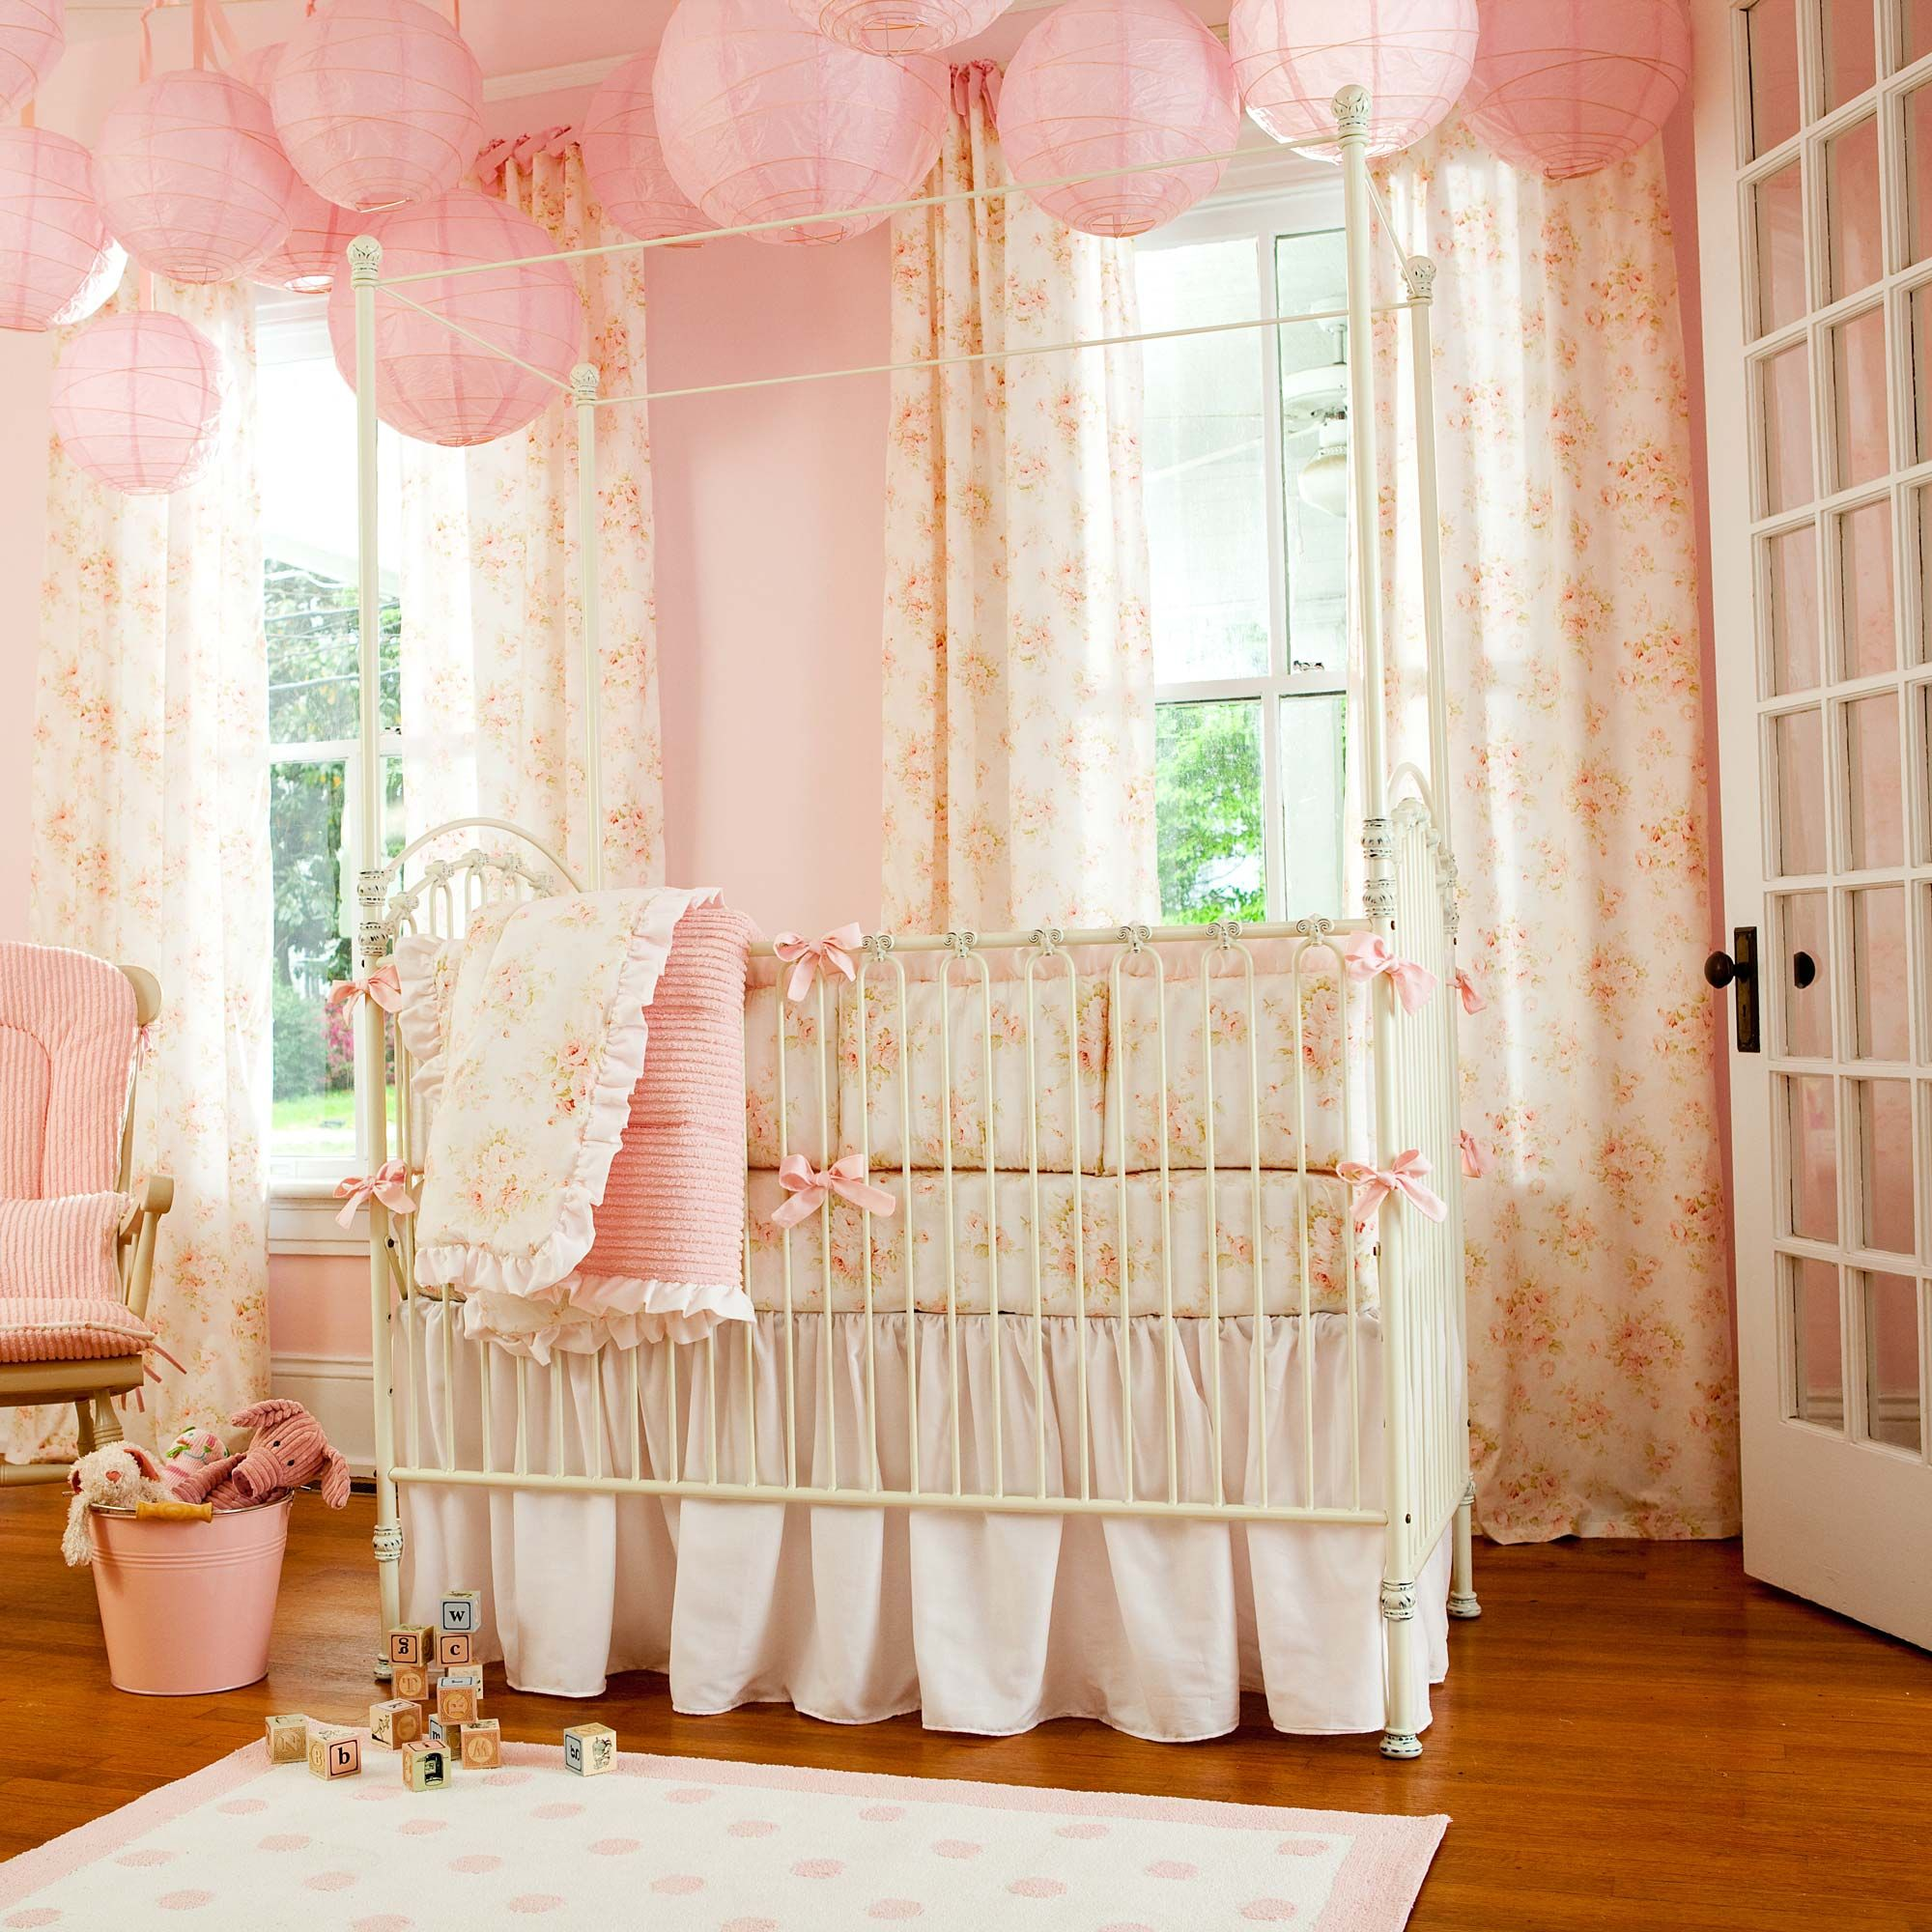 Shabby Chenille Baby Bedding Collection Baby room decor